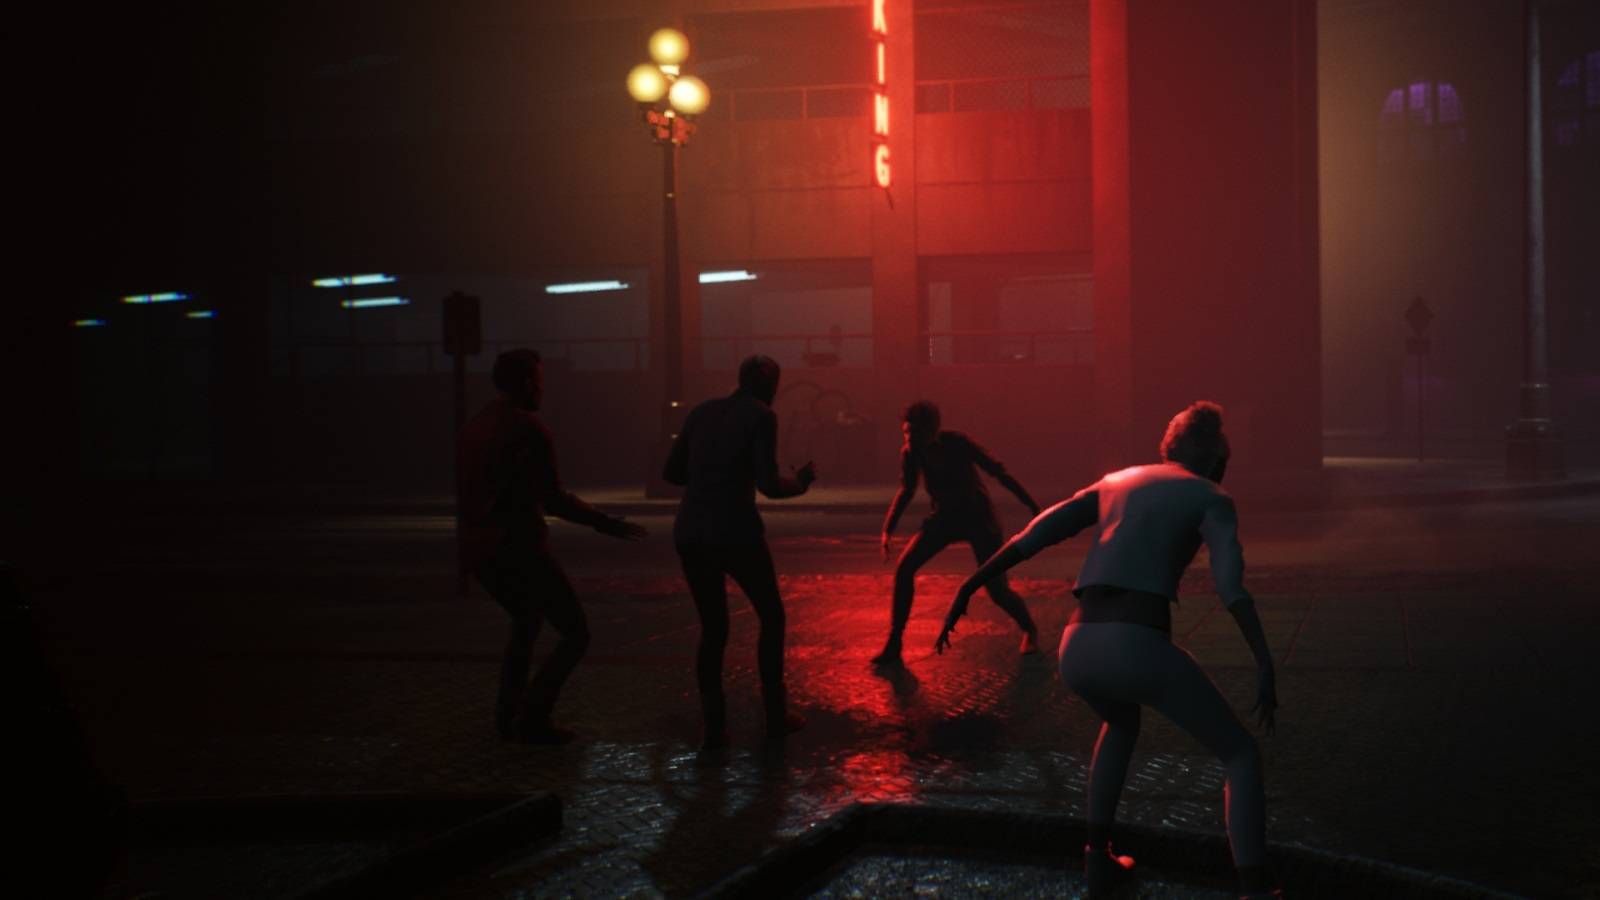 Vampire The Masquerade Bloodlines 2; screenshot: thinbloods